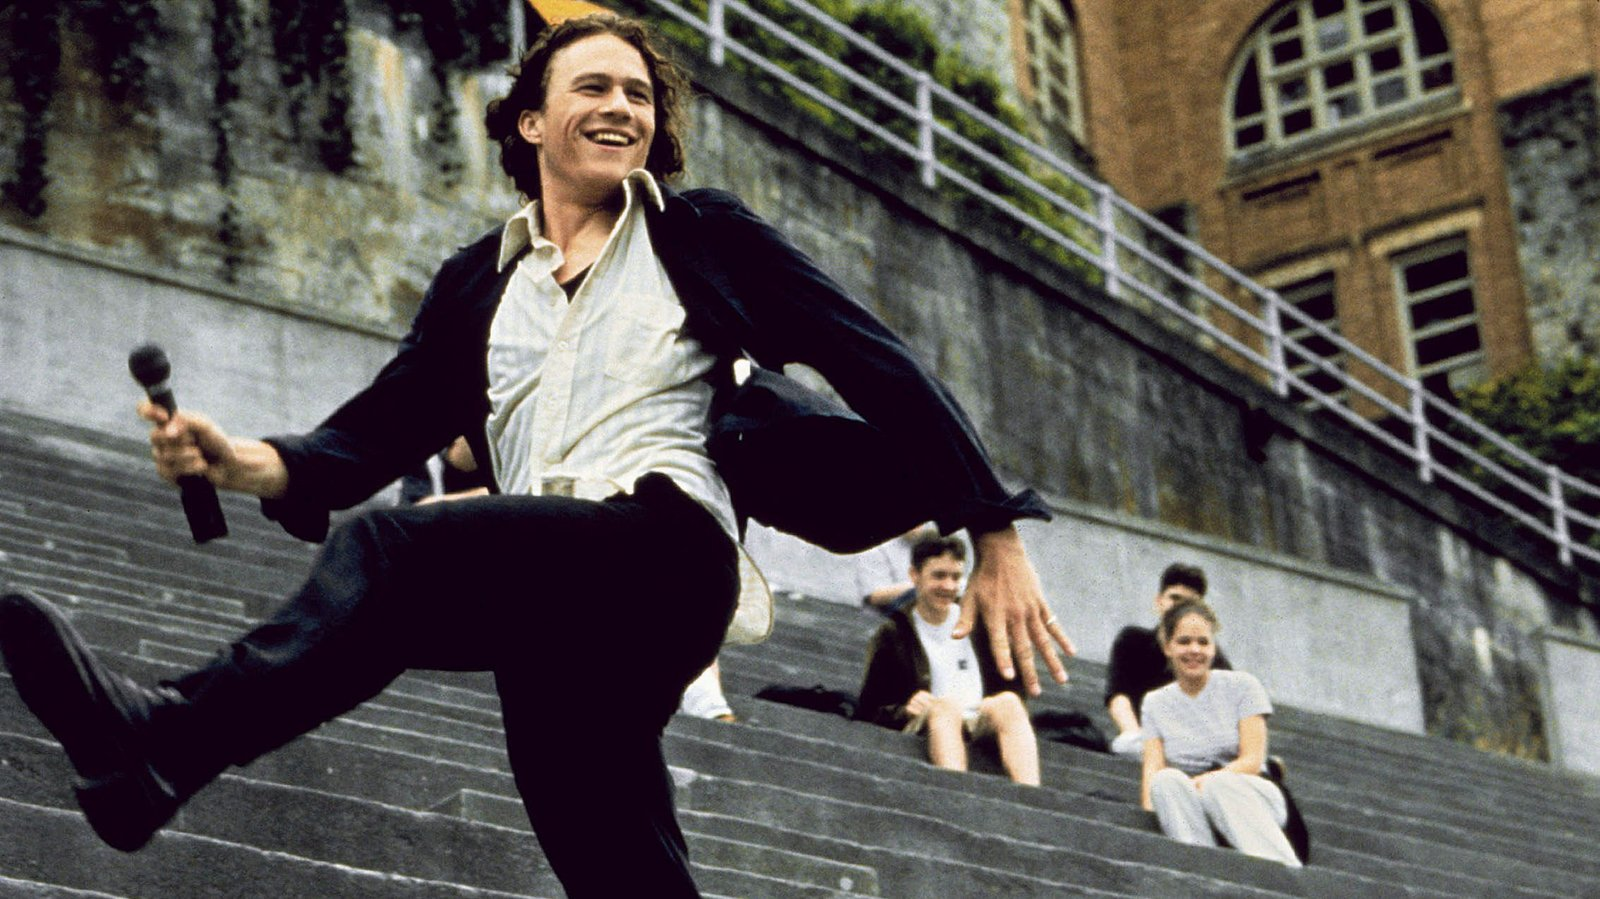 Heath Ledger in 10 Things I Hate About You